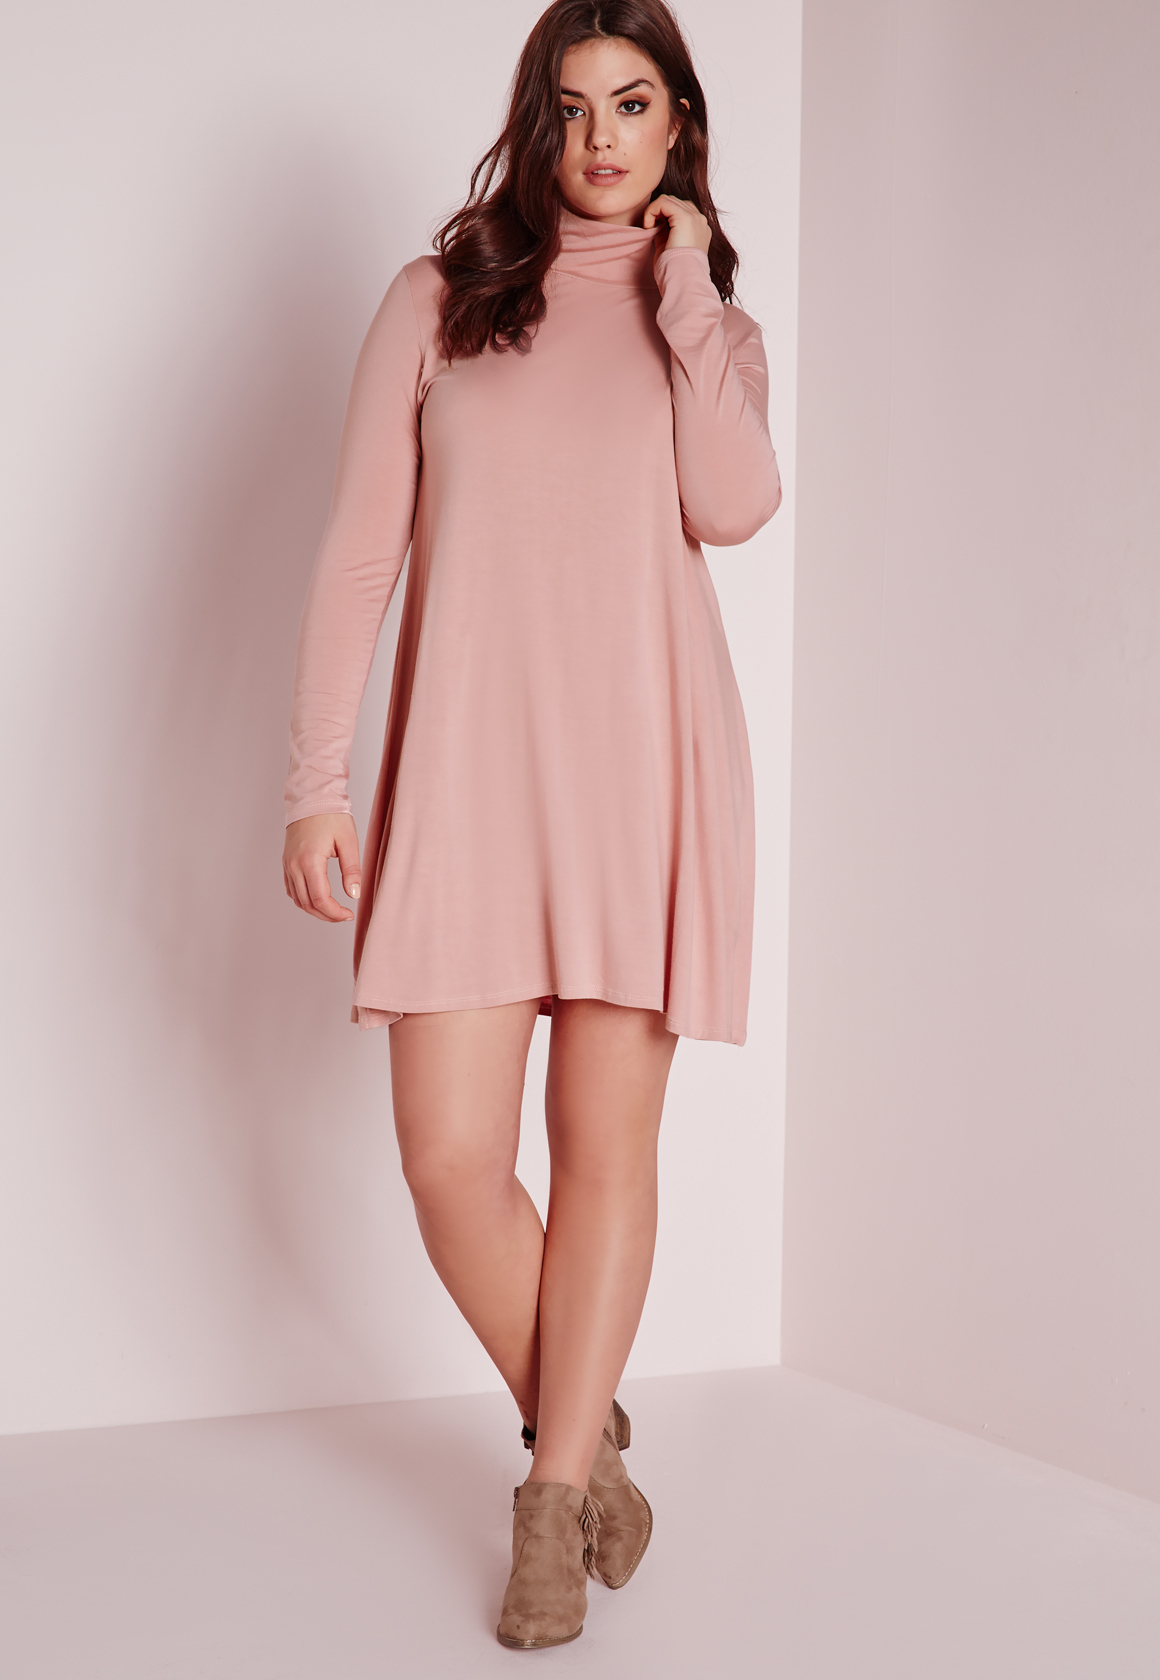 75cf4d1eefb15 Missguided Plus Size Swing Dress Pink in Pink - Lyst